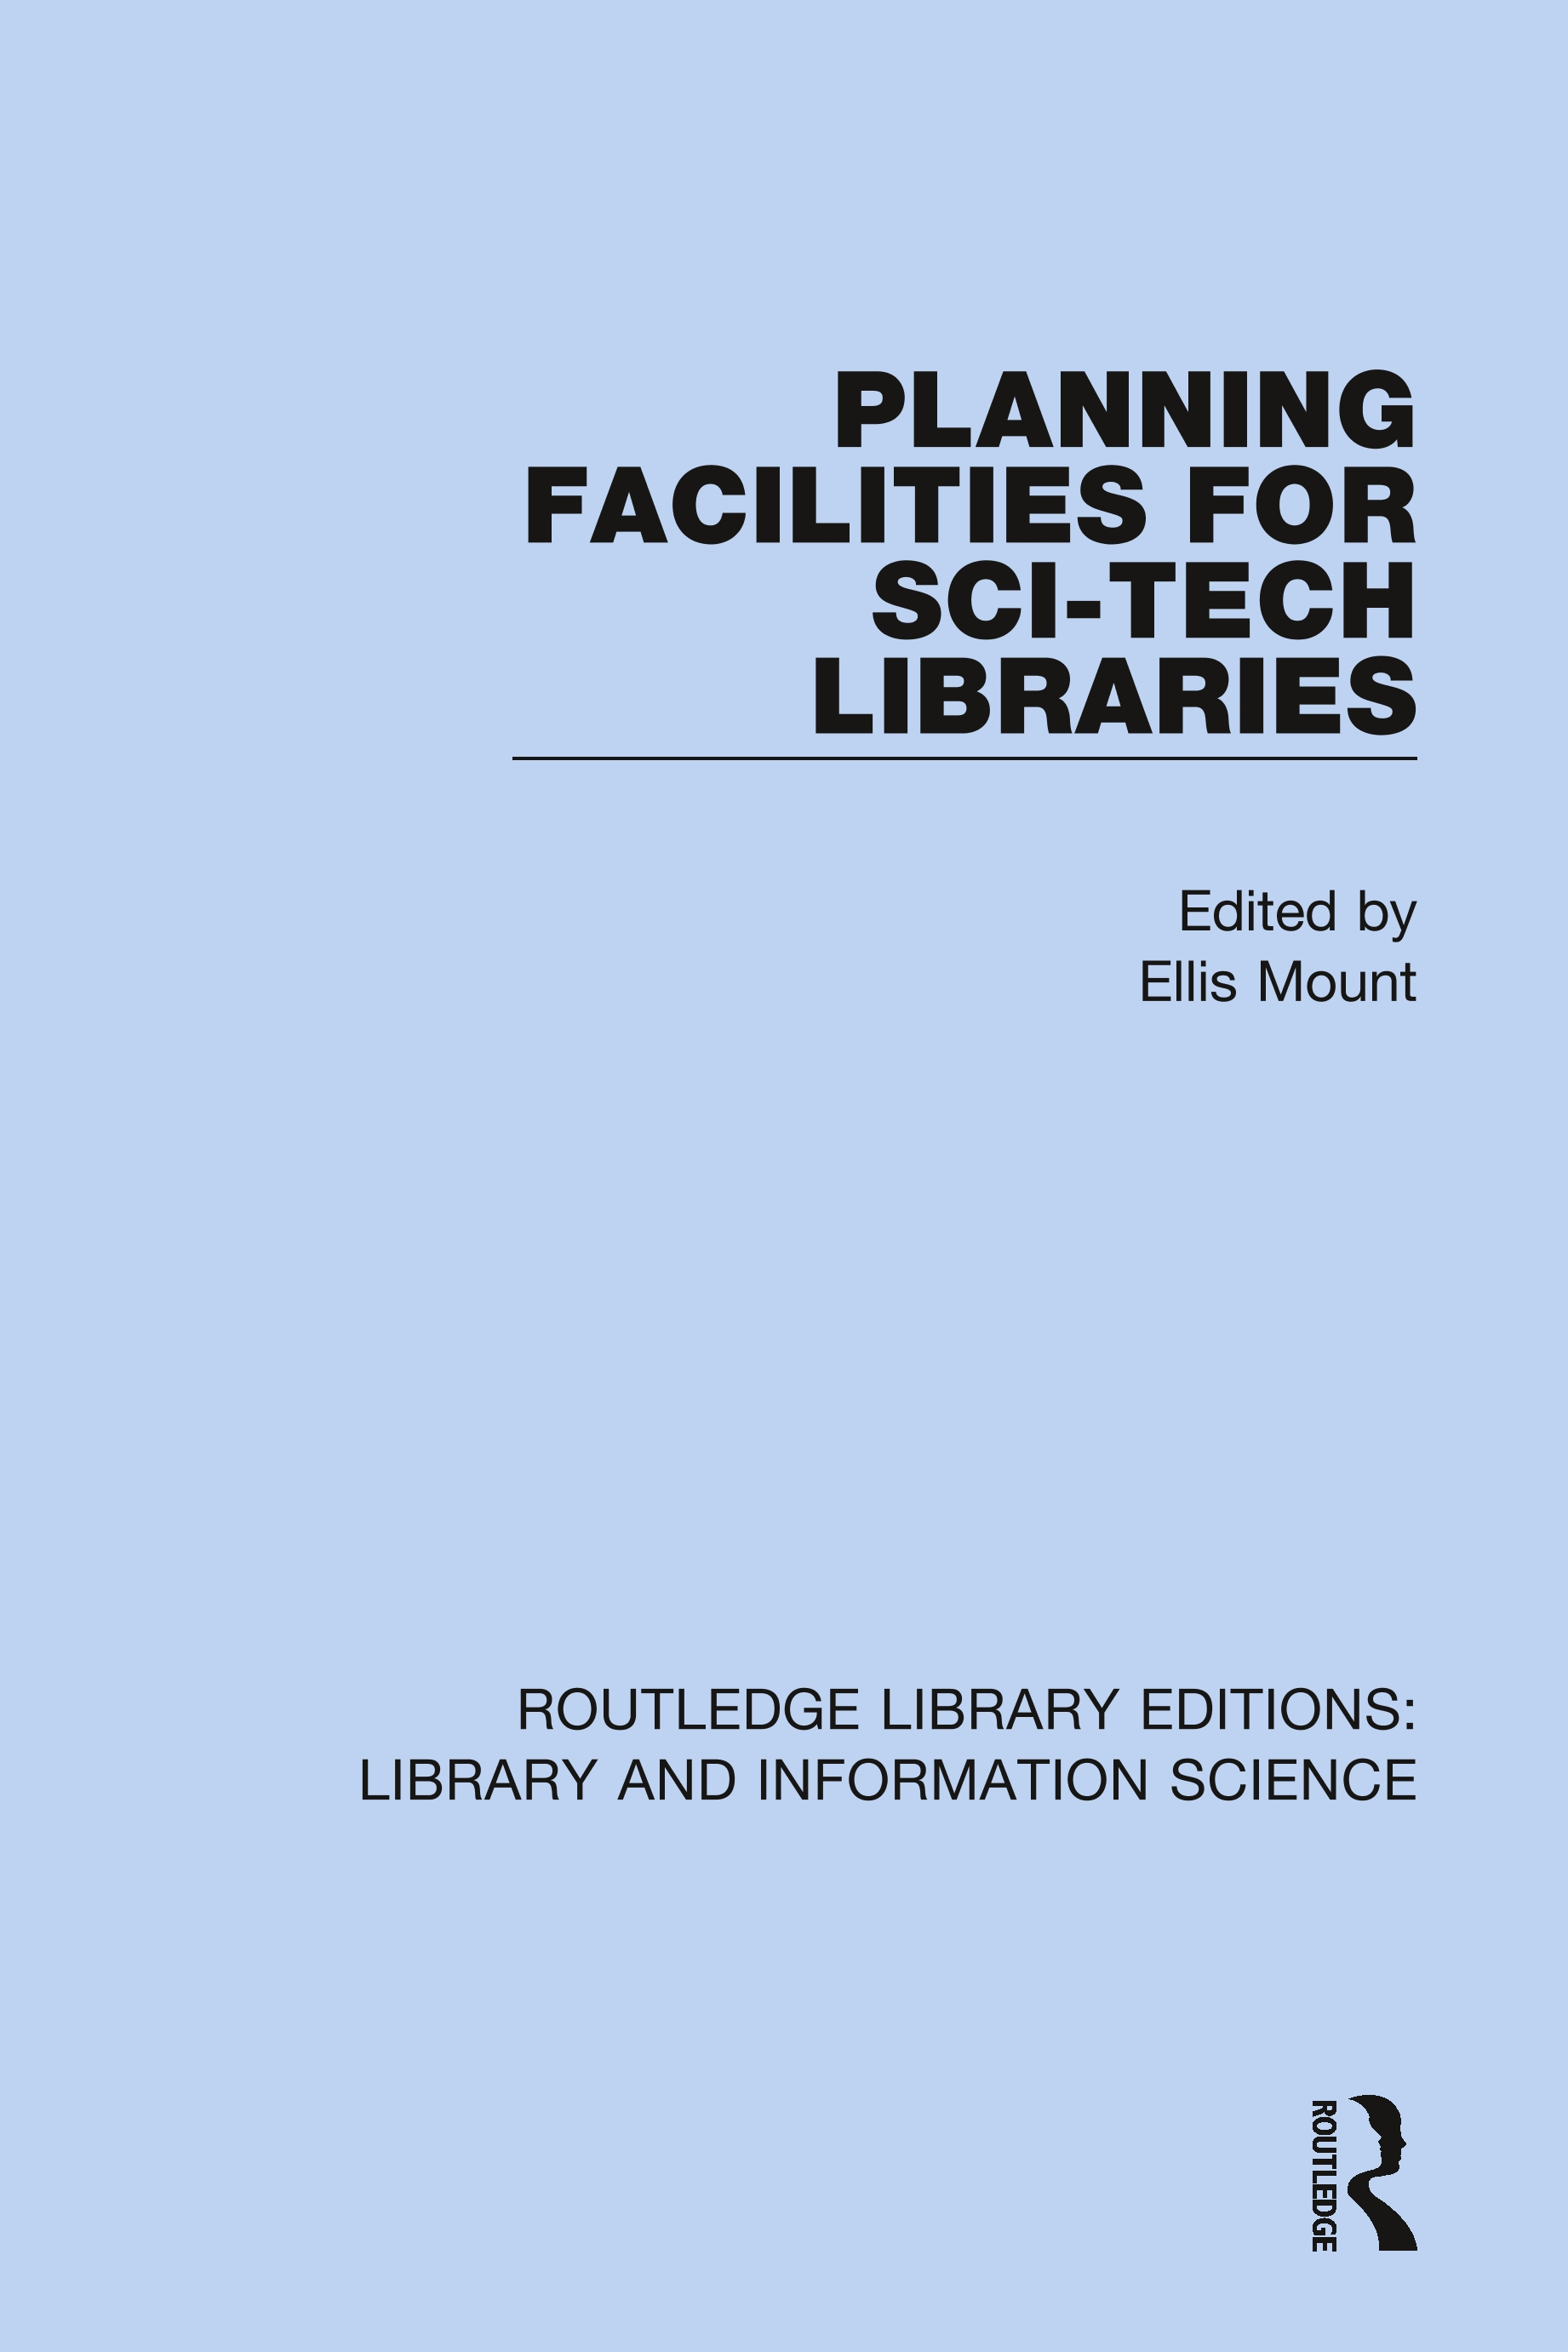 Planning Facilities for Sci-Tech Libraries book cover